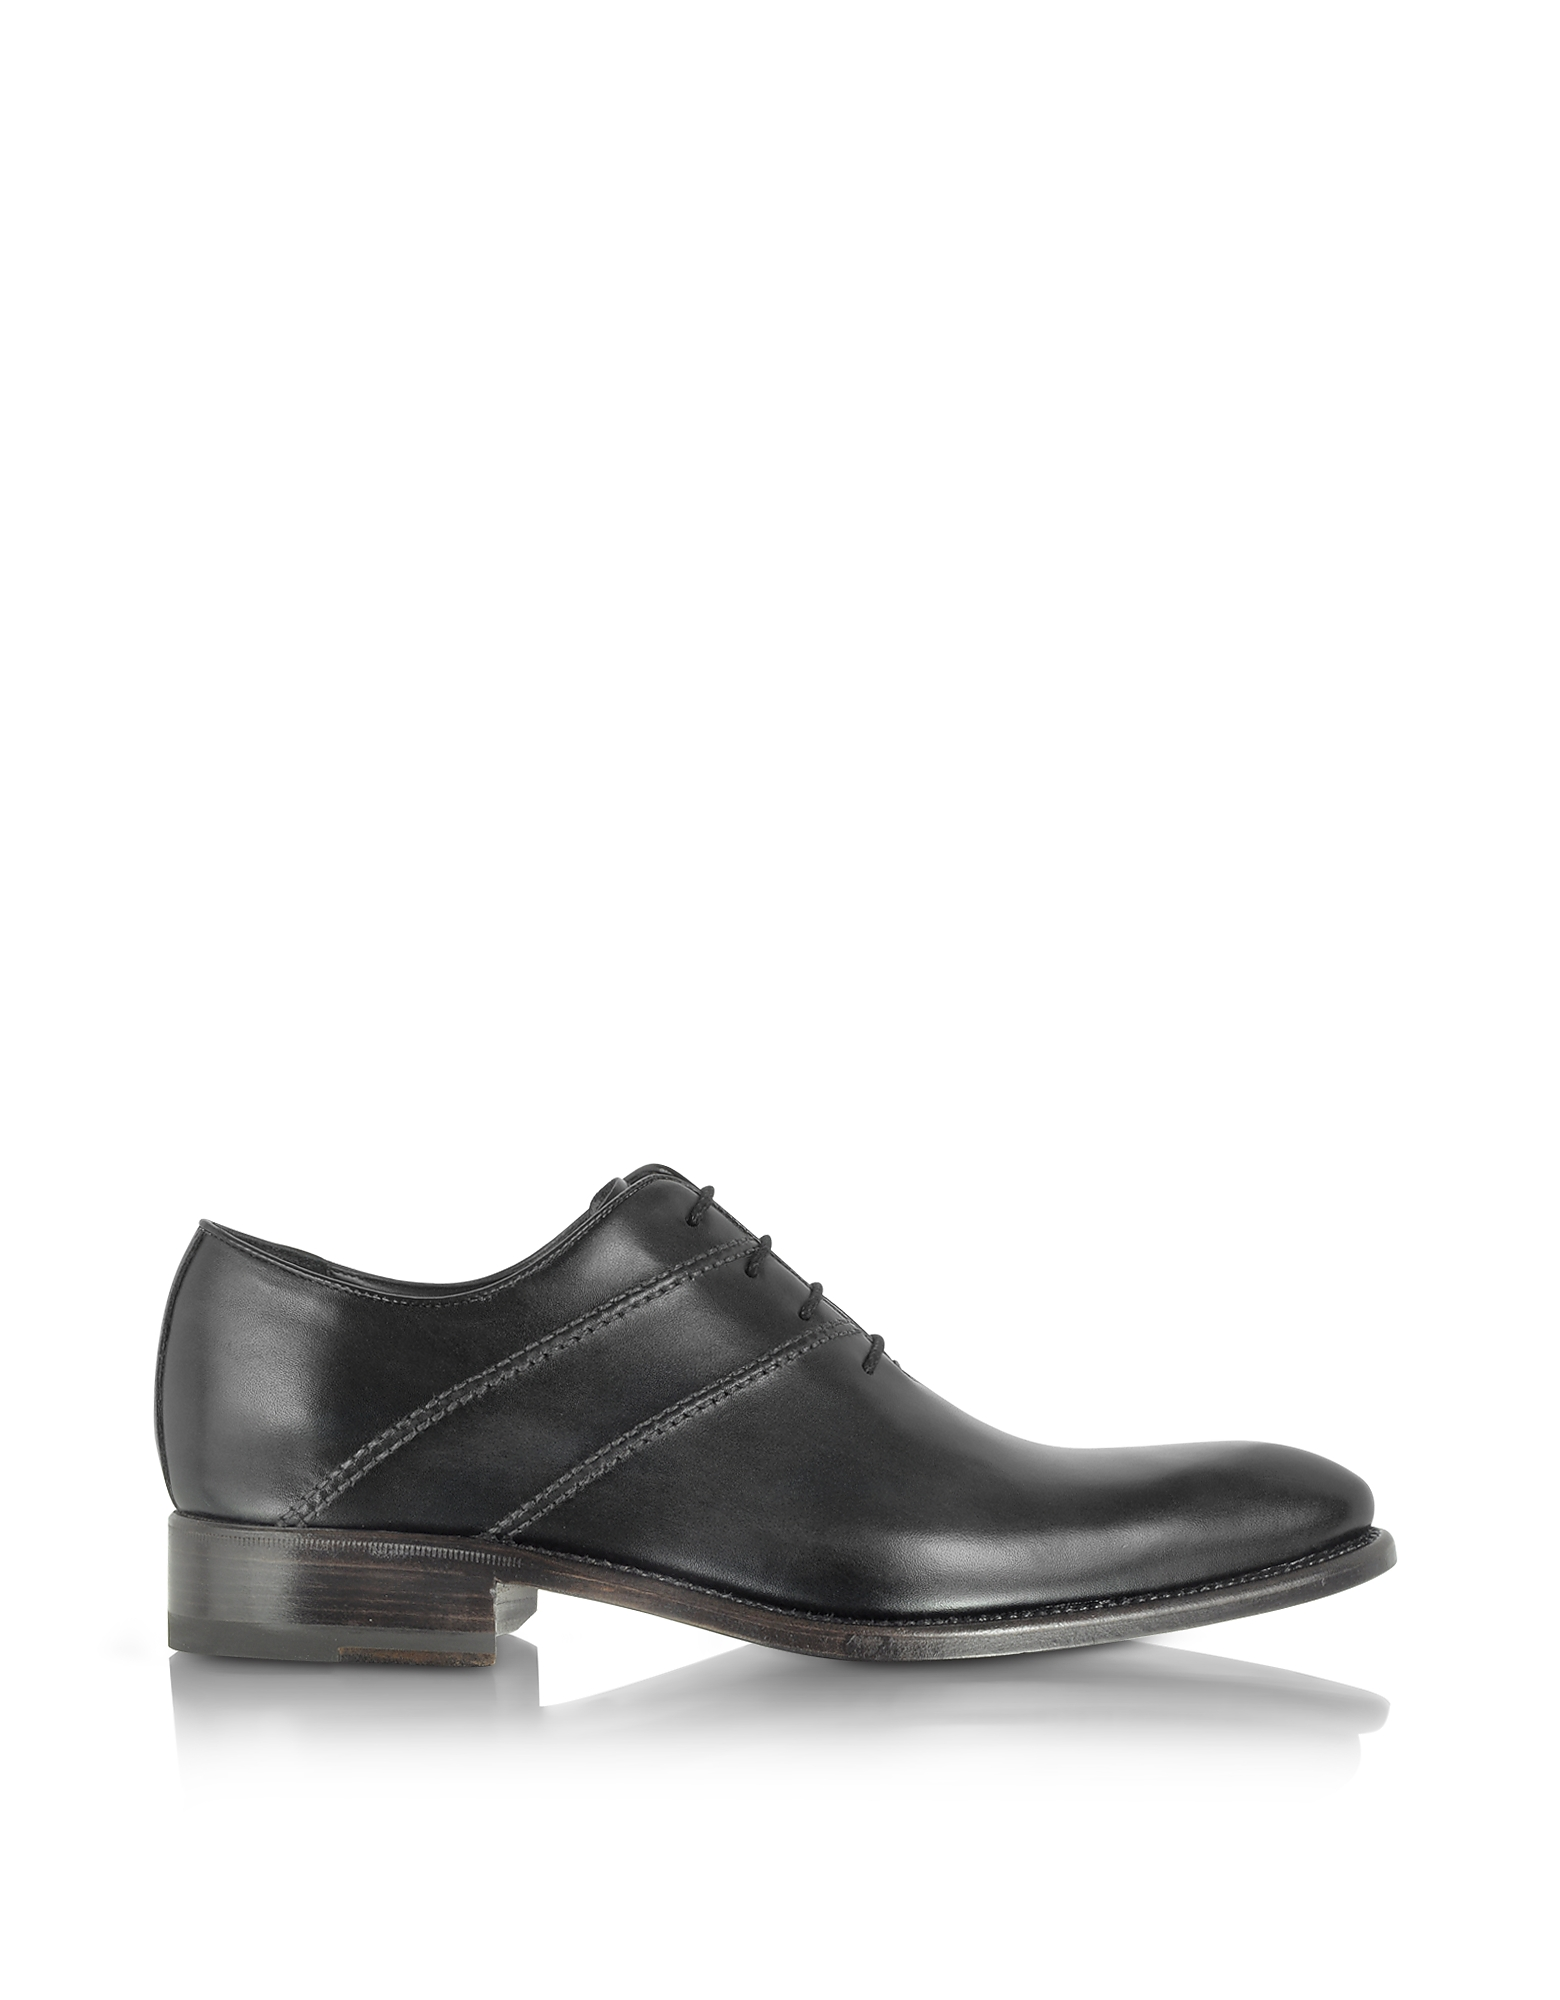 Forzieri Shoes, Black Italian Handcrafted Leather Oxford Dress Shoes